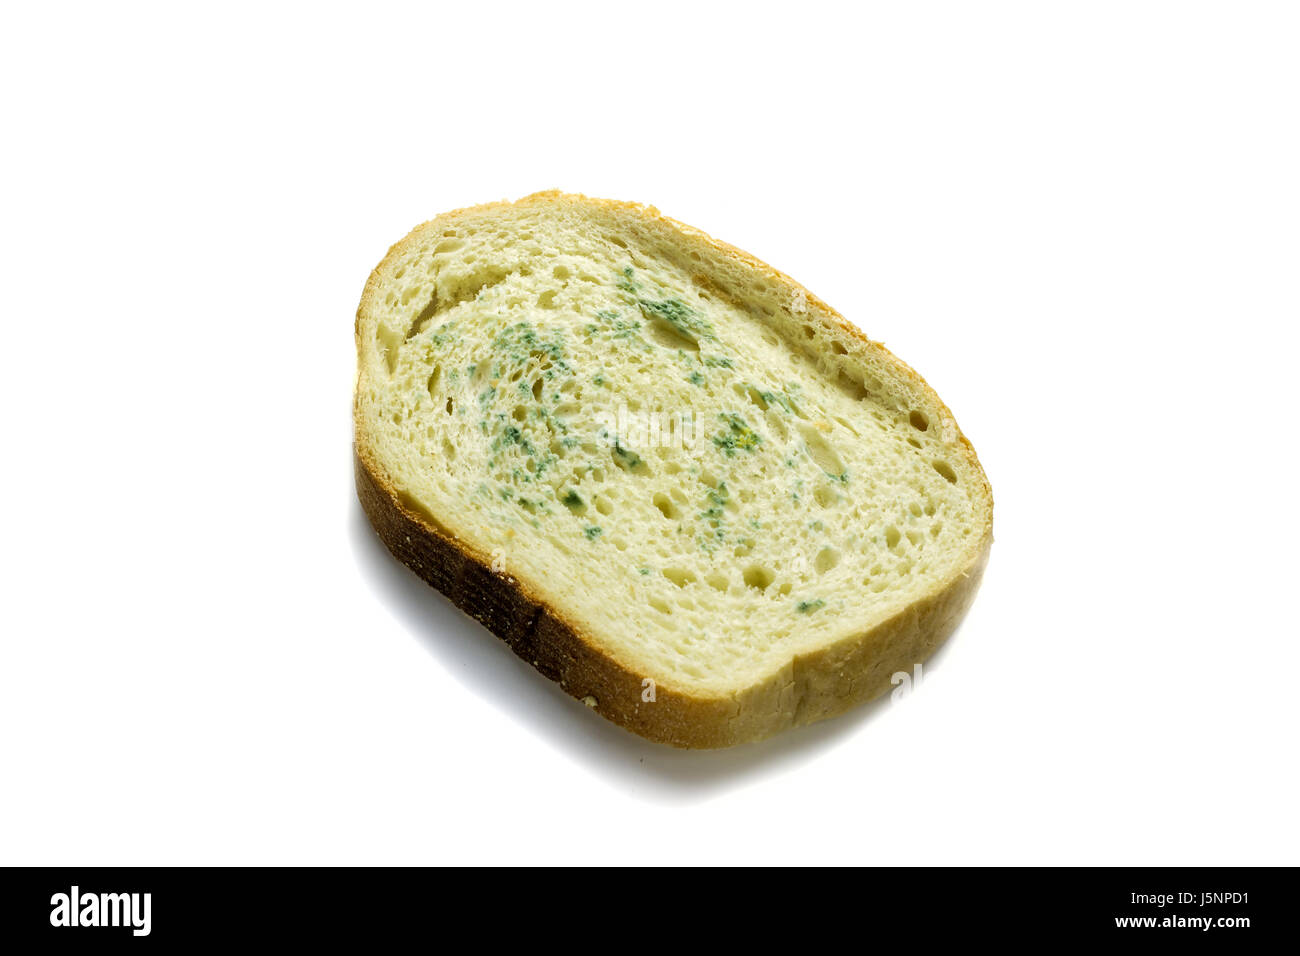 Spoiled bread with a mold on a white background. - Stock Image